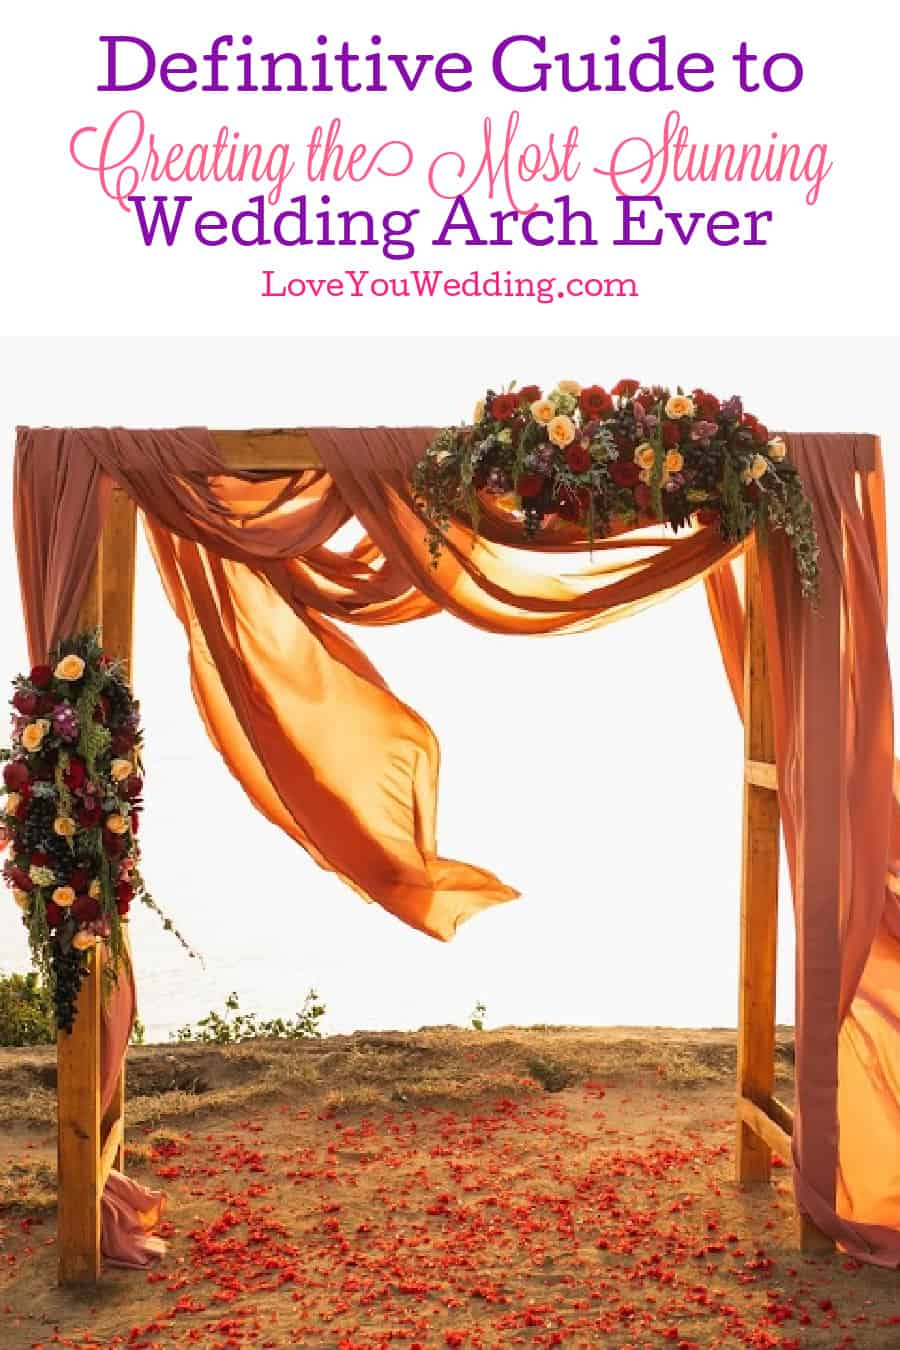 From renting vs buying to the perfect decorations and more, we've covered literally everything you need to know about wedding arches here!